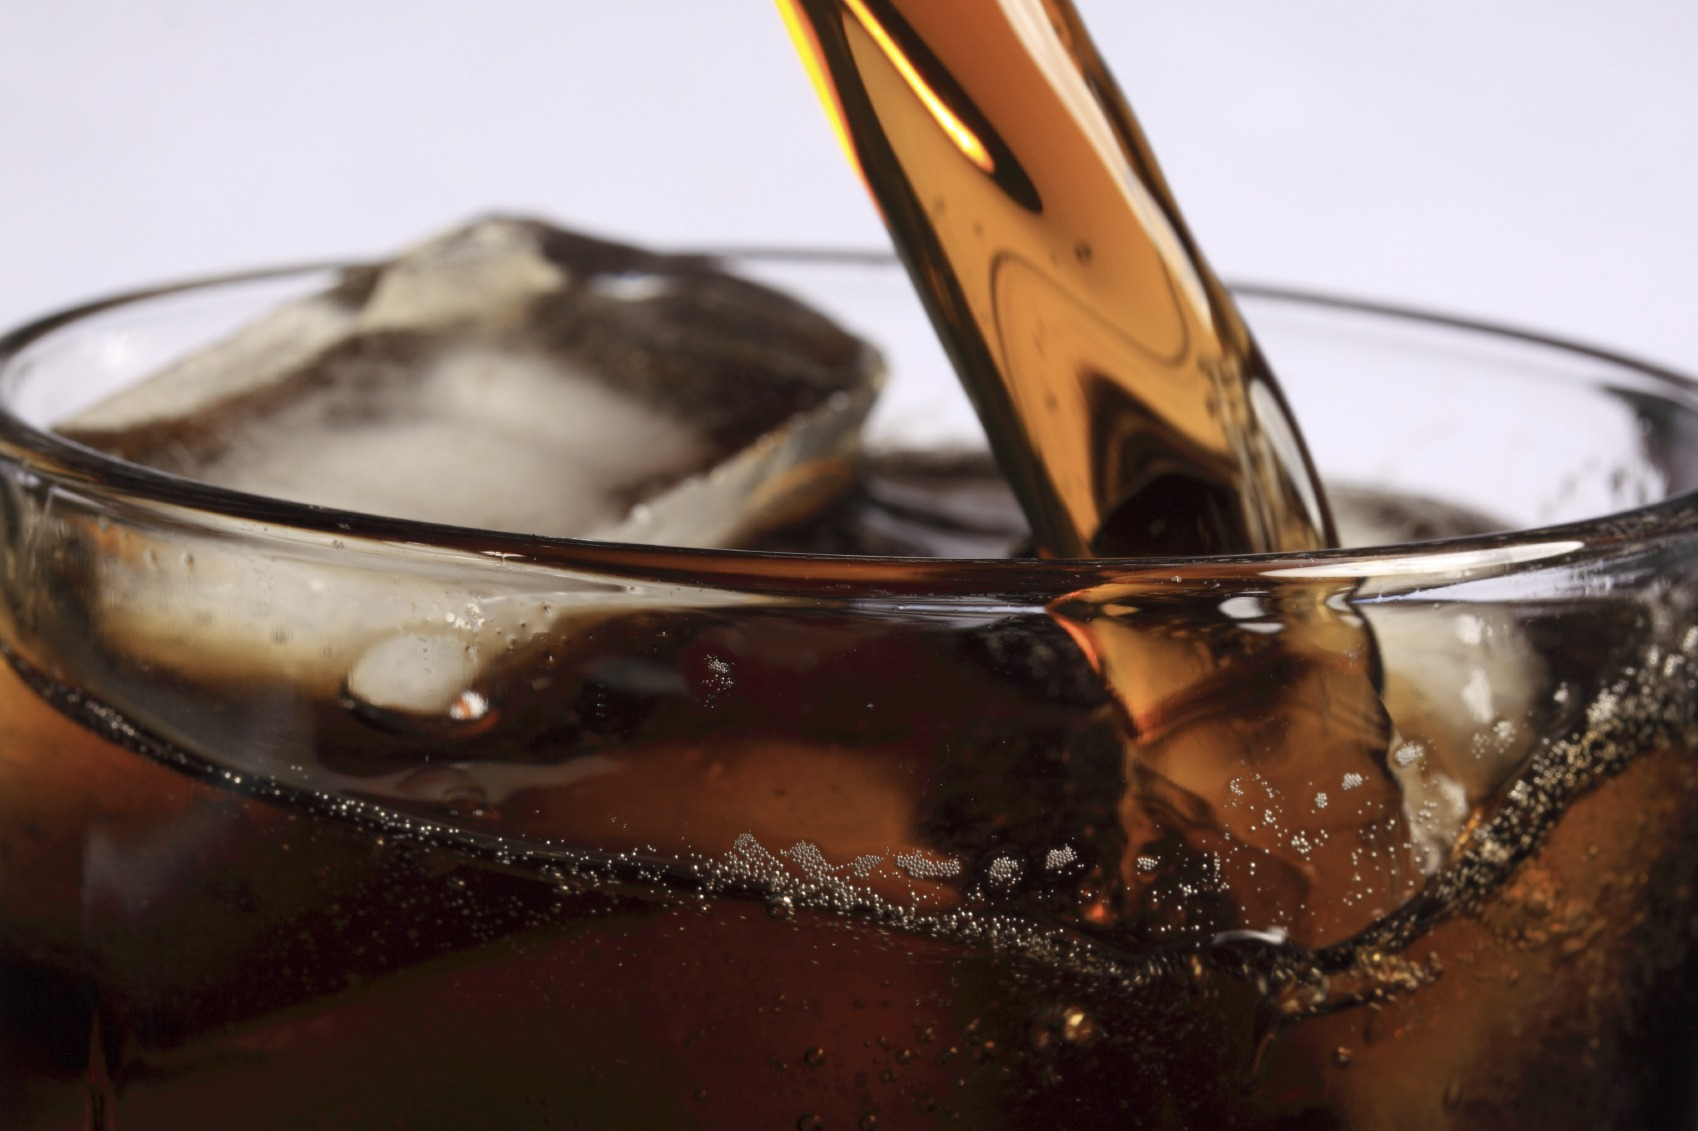 Why We Should Look More Closely At the Size of Our Soda